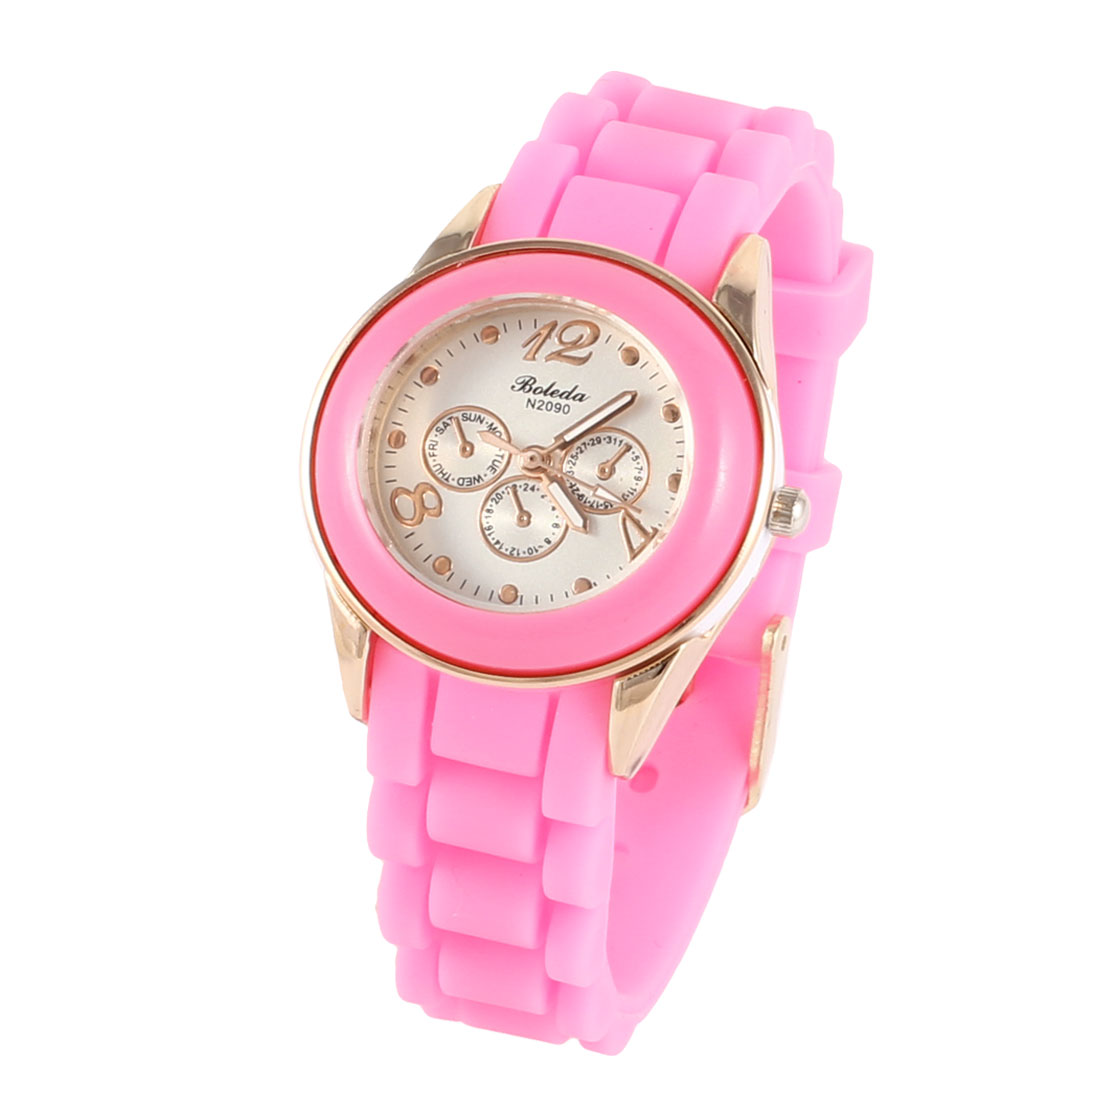 Woman 3.5cm Dia Dial Single Pin Buckle Silicone Wristband Quartz Watch Pink